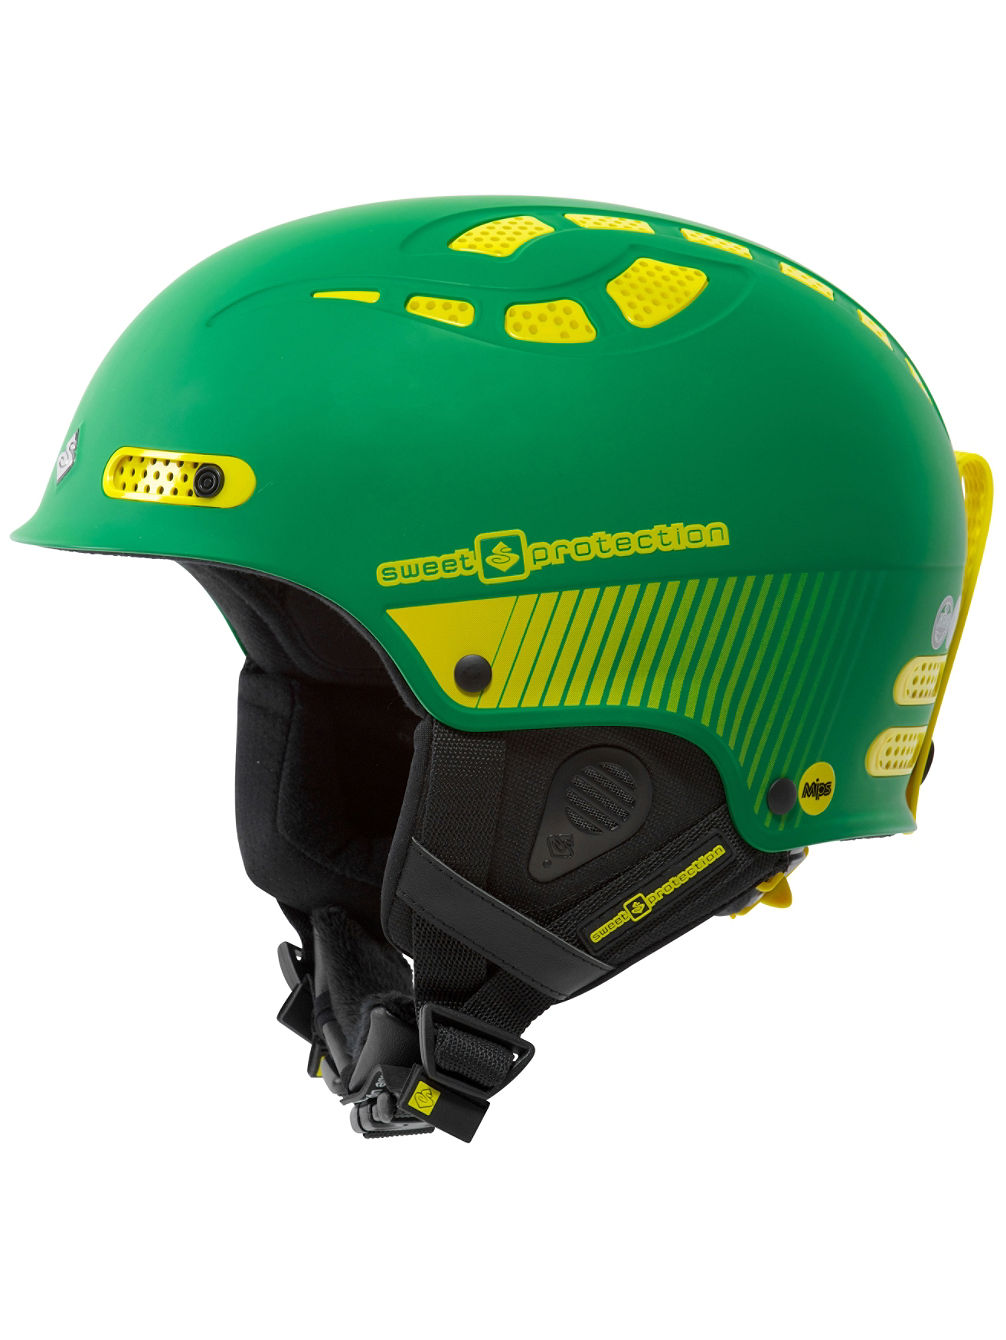 sweet-protection-igniter-mips-helmet